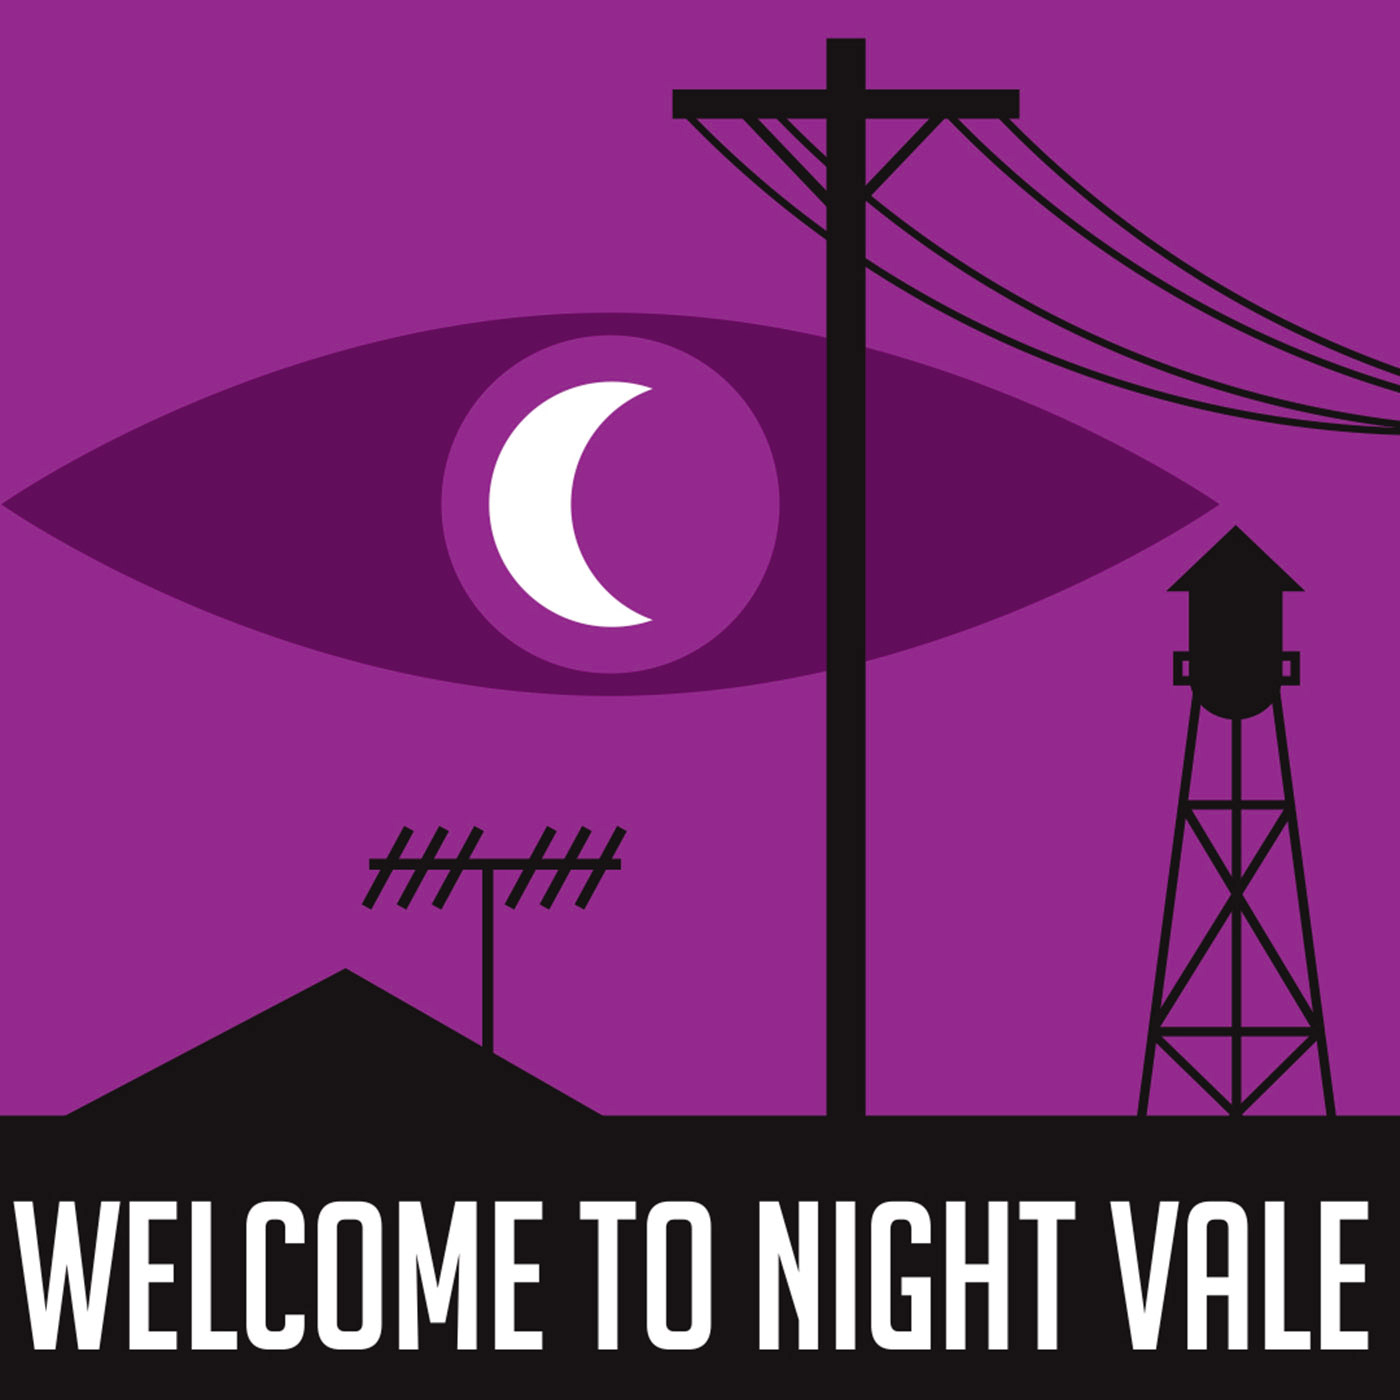 111 - Summer 2017, Night Vale, USA